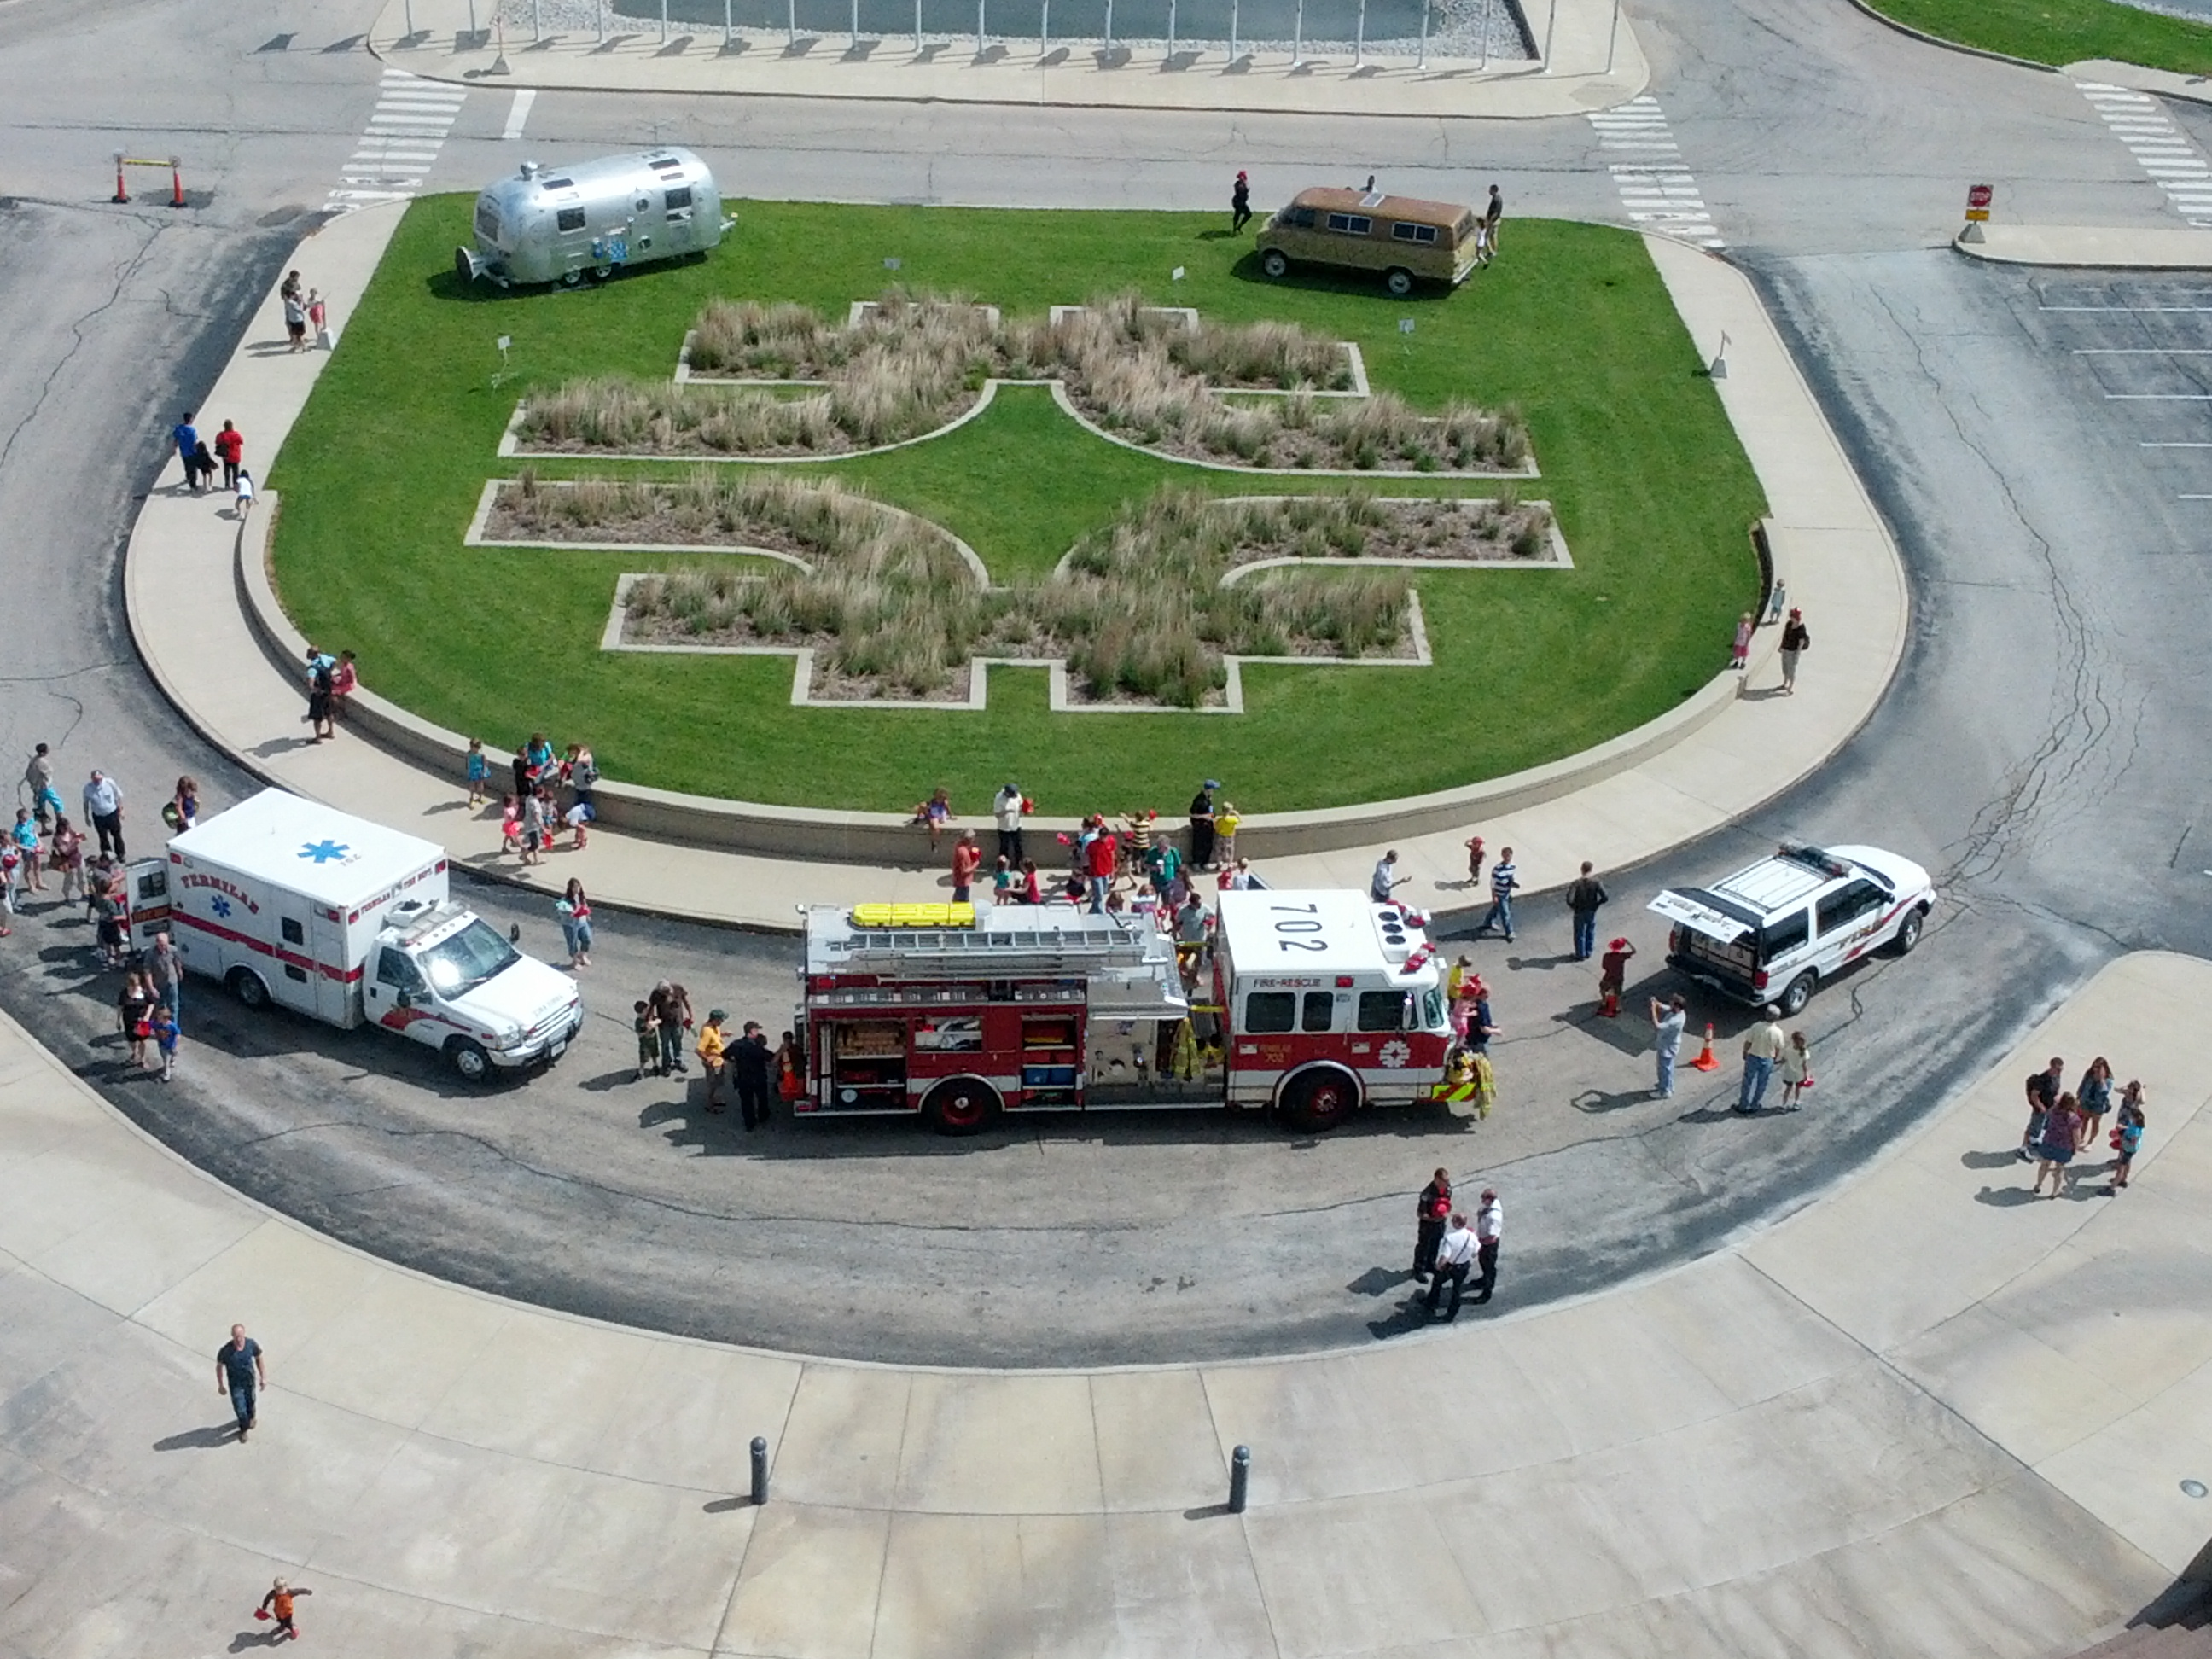 On Daughters and Sons to Work Day, five vehicles formed a ring around the front lawn of Wilson Hall. Counter-clockwise from top left: Edward Tufte's Interplanetary Explorer, the Fermilab ambulance, the Fermilab firetruck, the Fermilab battalion chief's vehicle and the Feynman van. Photo: Ken Schumacher, SCD